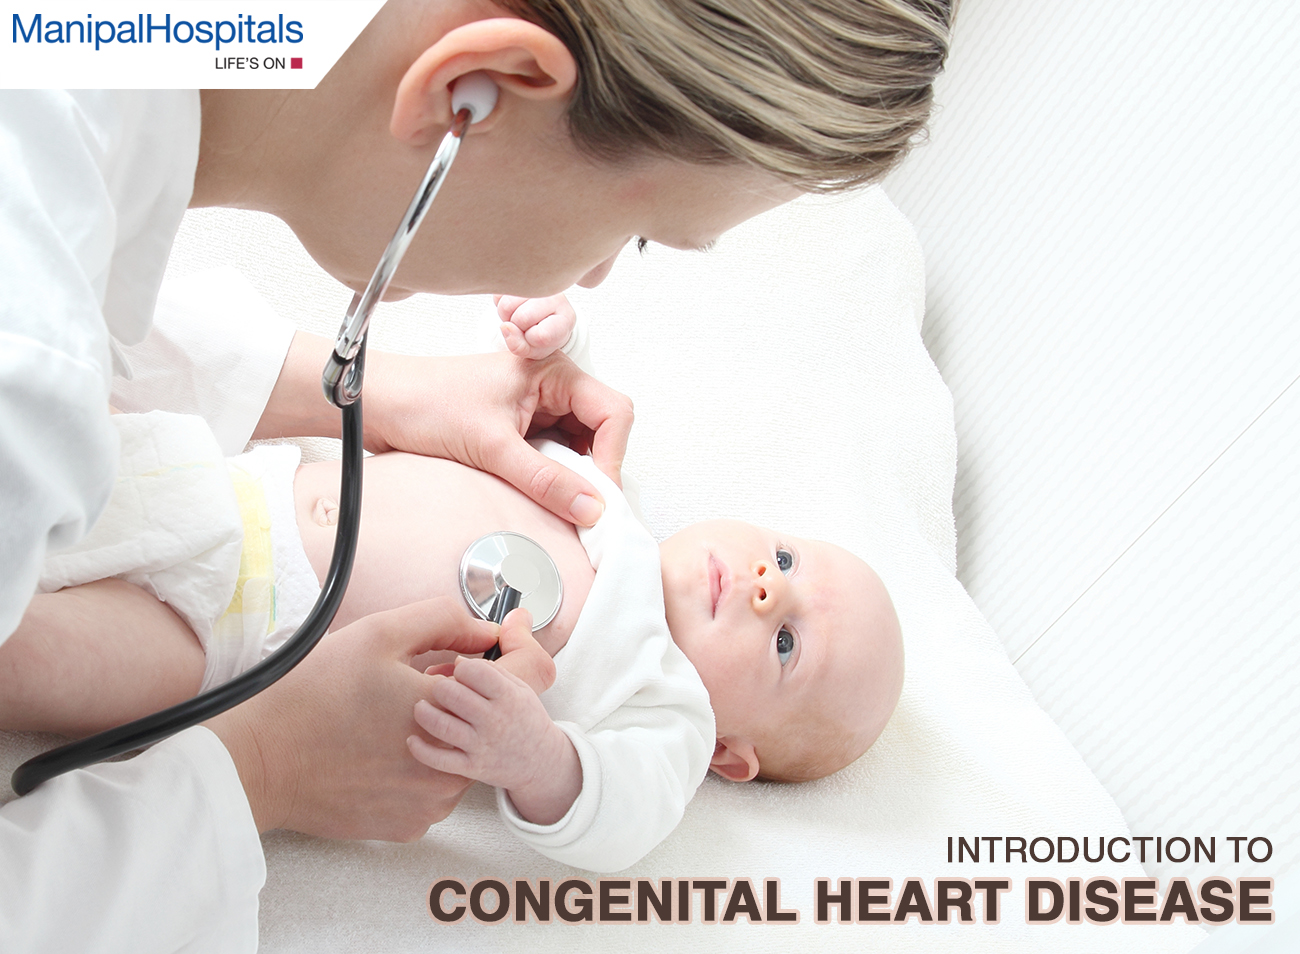 Introduction to Congenital Heart Disease